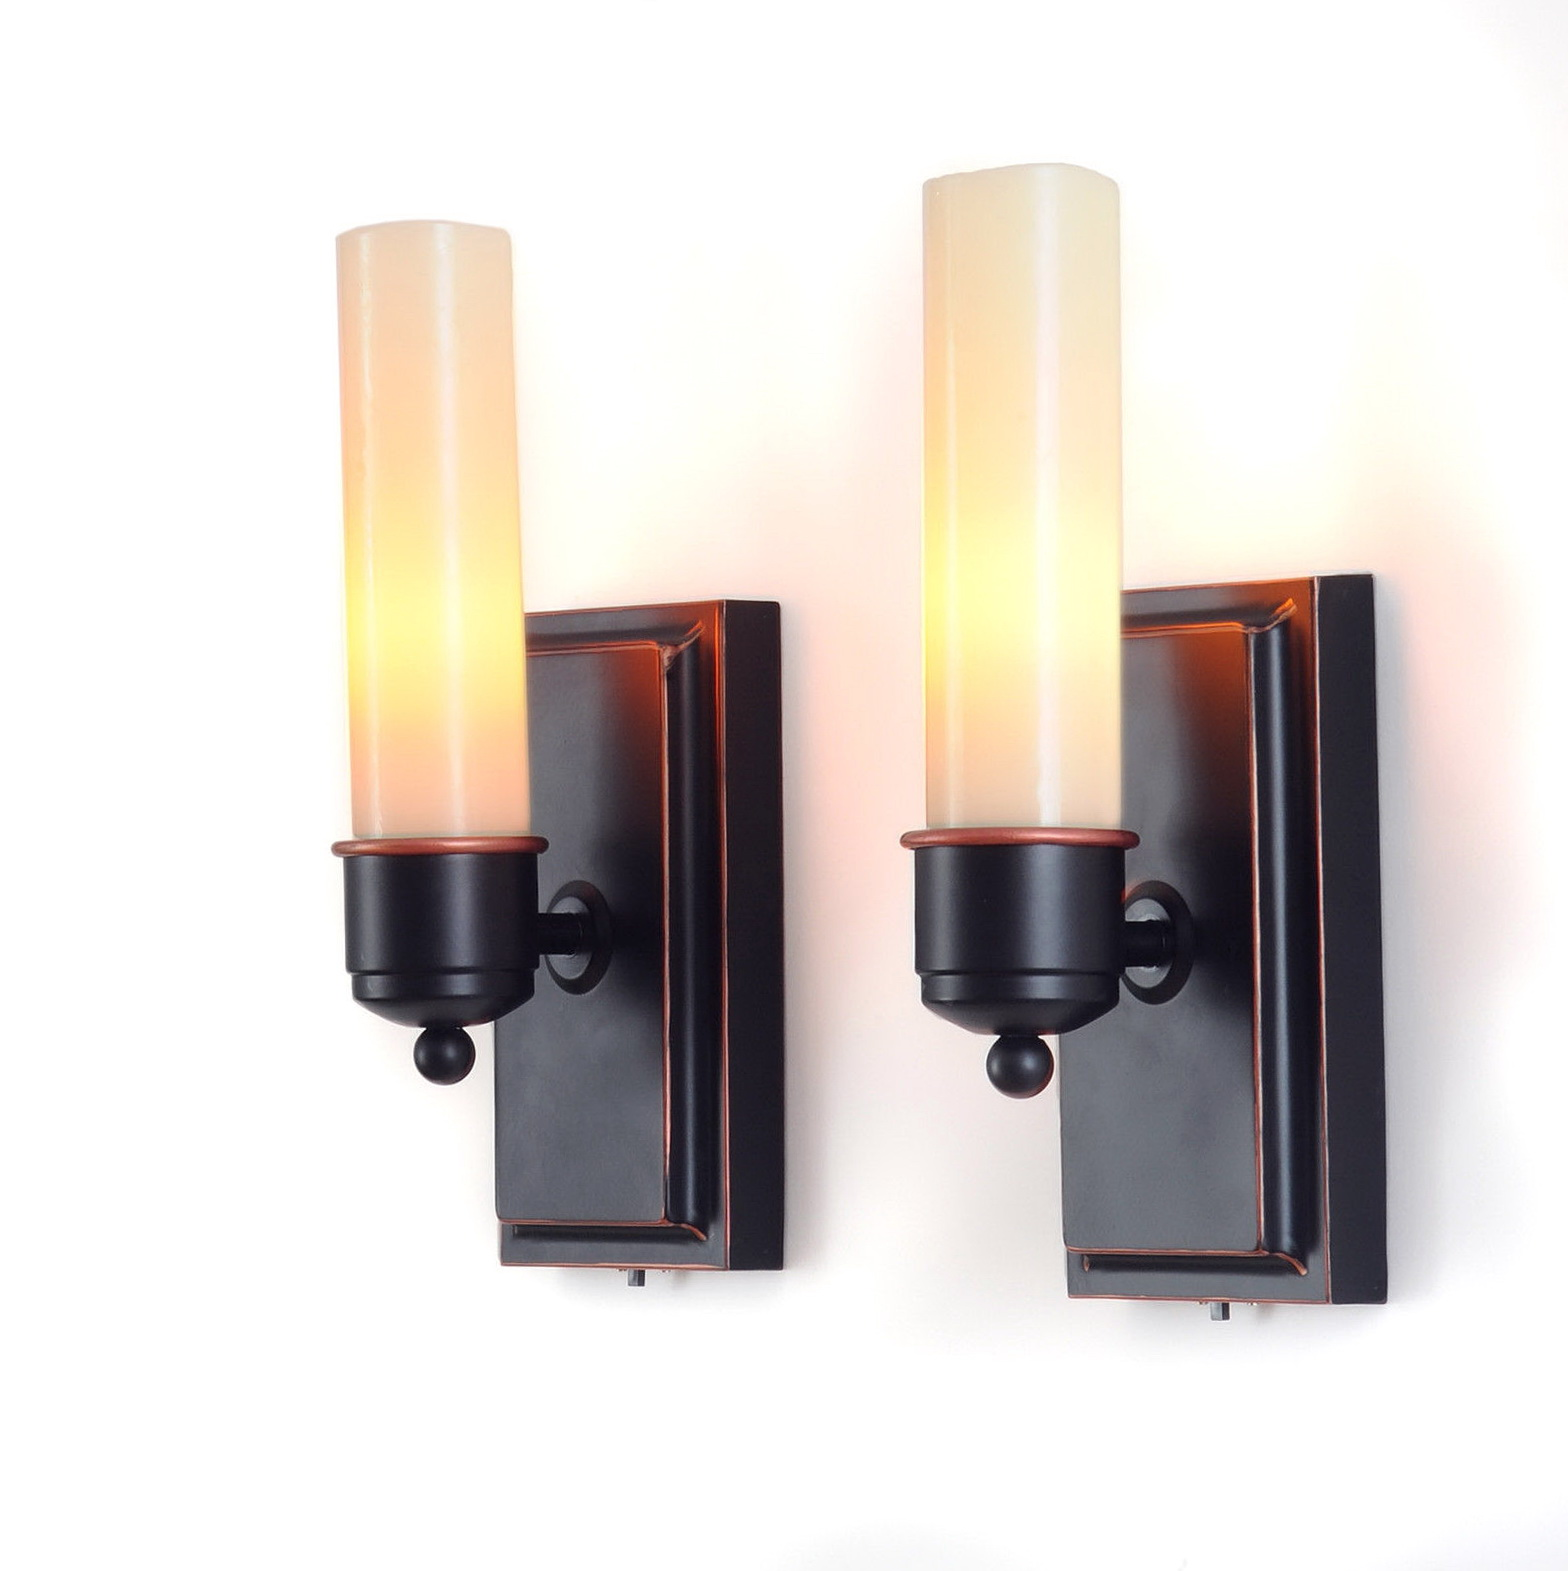 Wall Lights Battery Powered : Change the look of your garden with Wall light battery operated Warisan Lighting